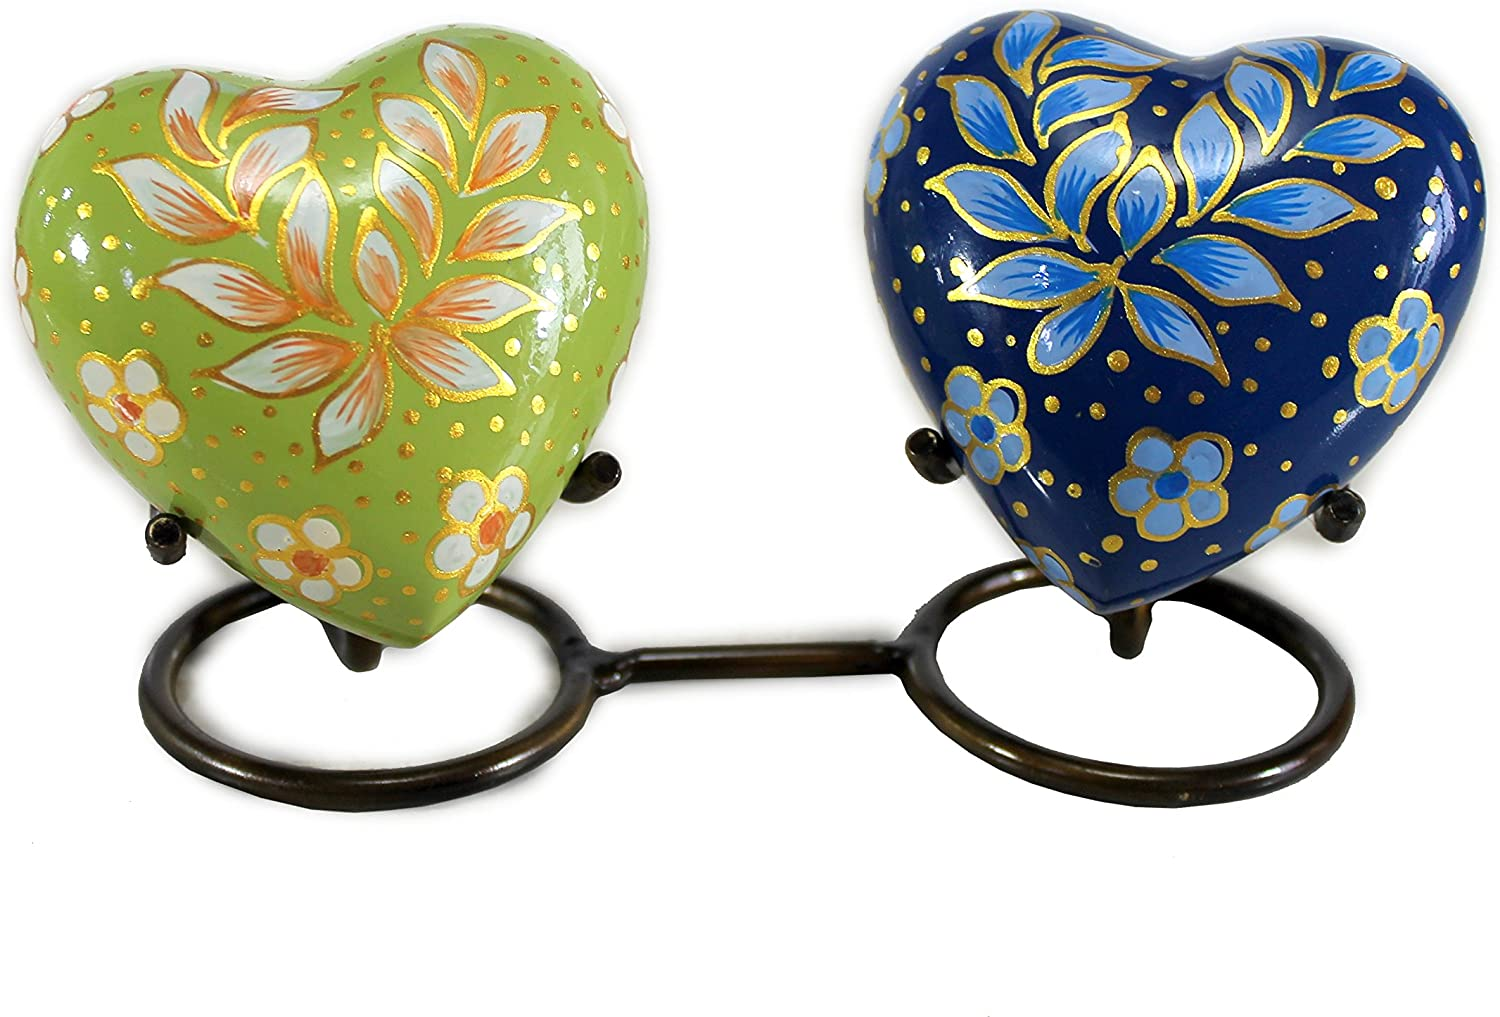 eSplanade Heart Shaped Companion Cremation urn - Pair of 2 with Stand - Memorial Container Jar Pot | Metal Urns | Burial Urns | Memorial Keepsake | Brass urns | Double Urns